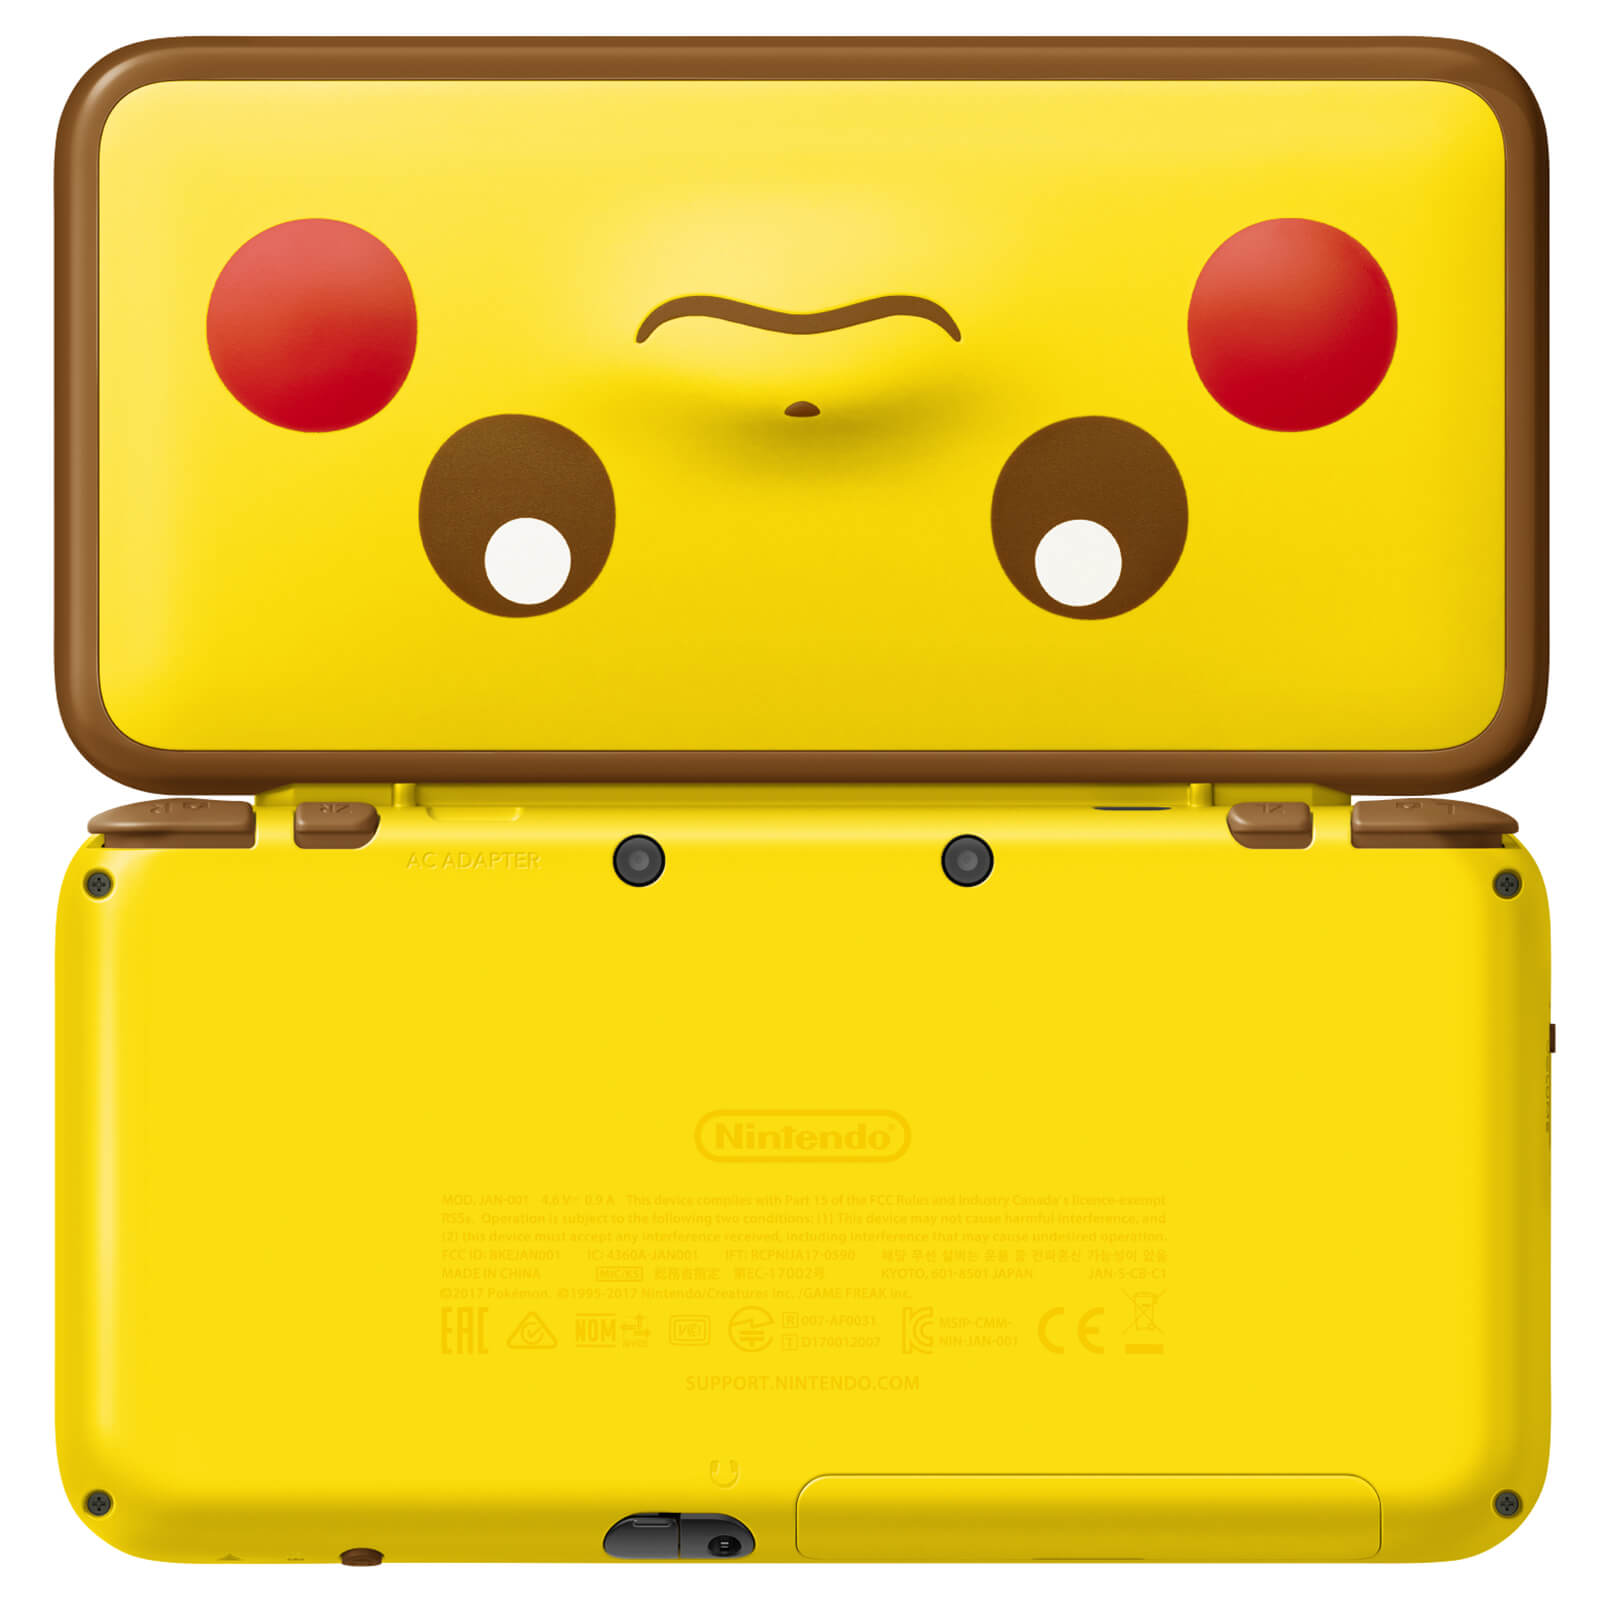 New Nintendo 2DS XL Pikachu Edition Back